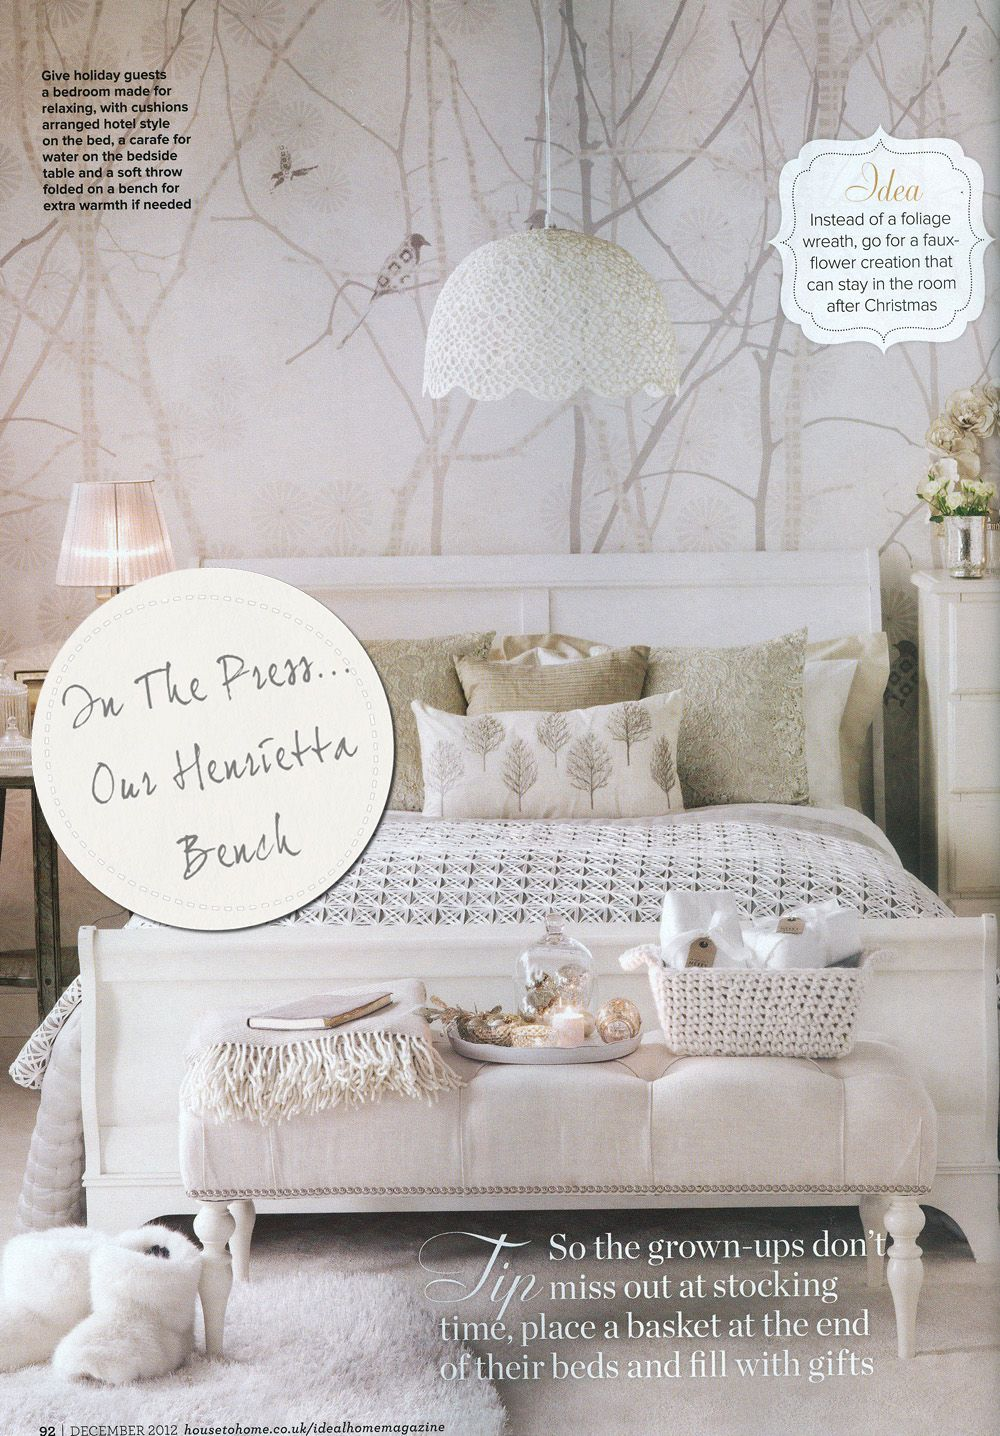 Ideal Home, Dec Issue create a beautiful guest bedroom for Christmas ...